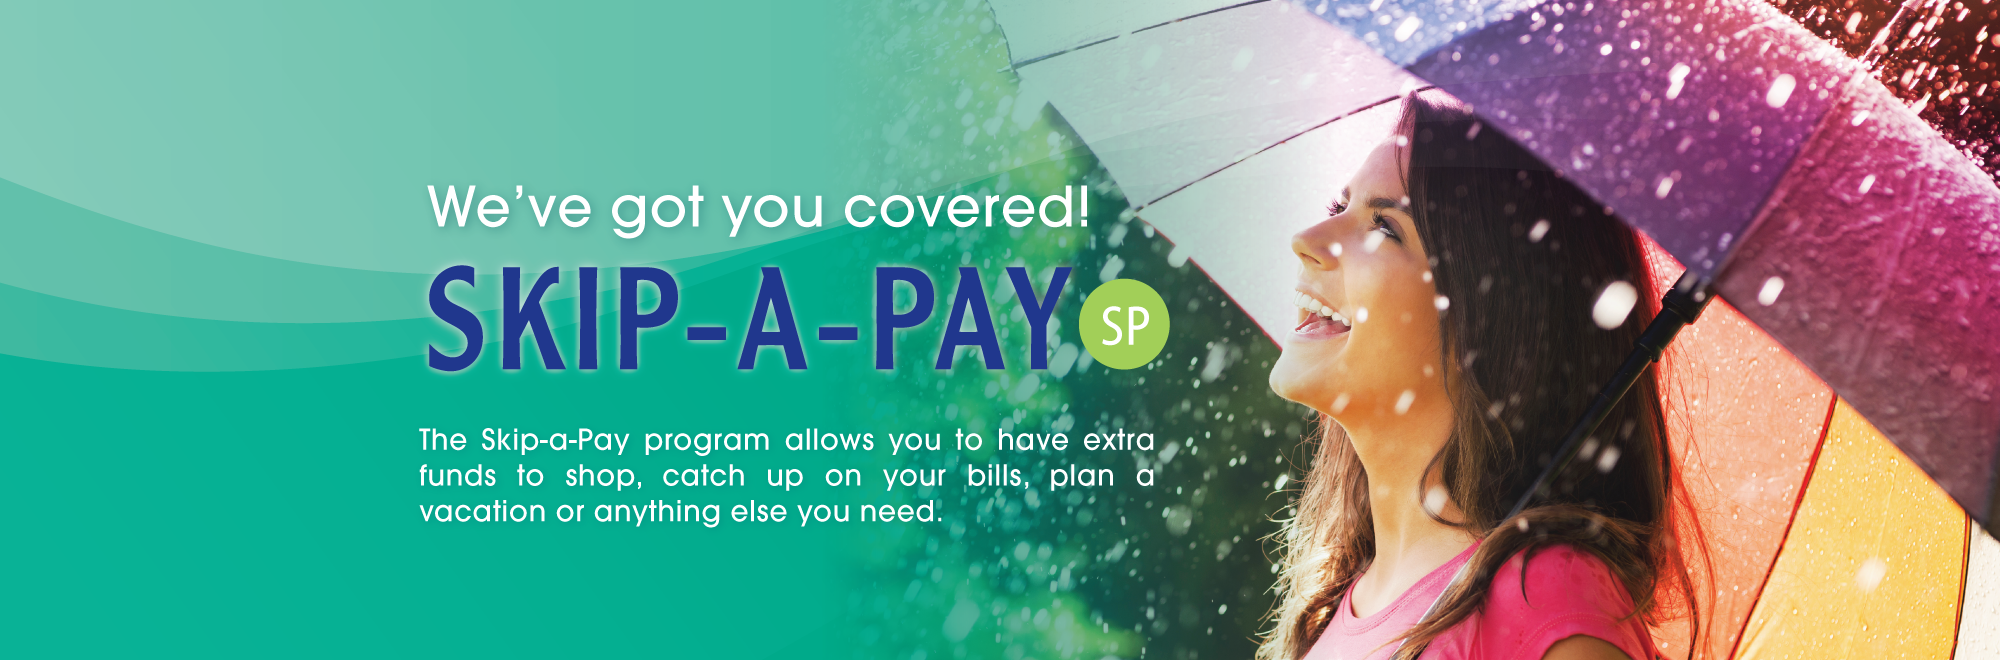 We've got your covered! Skip-A-Pay